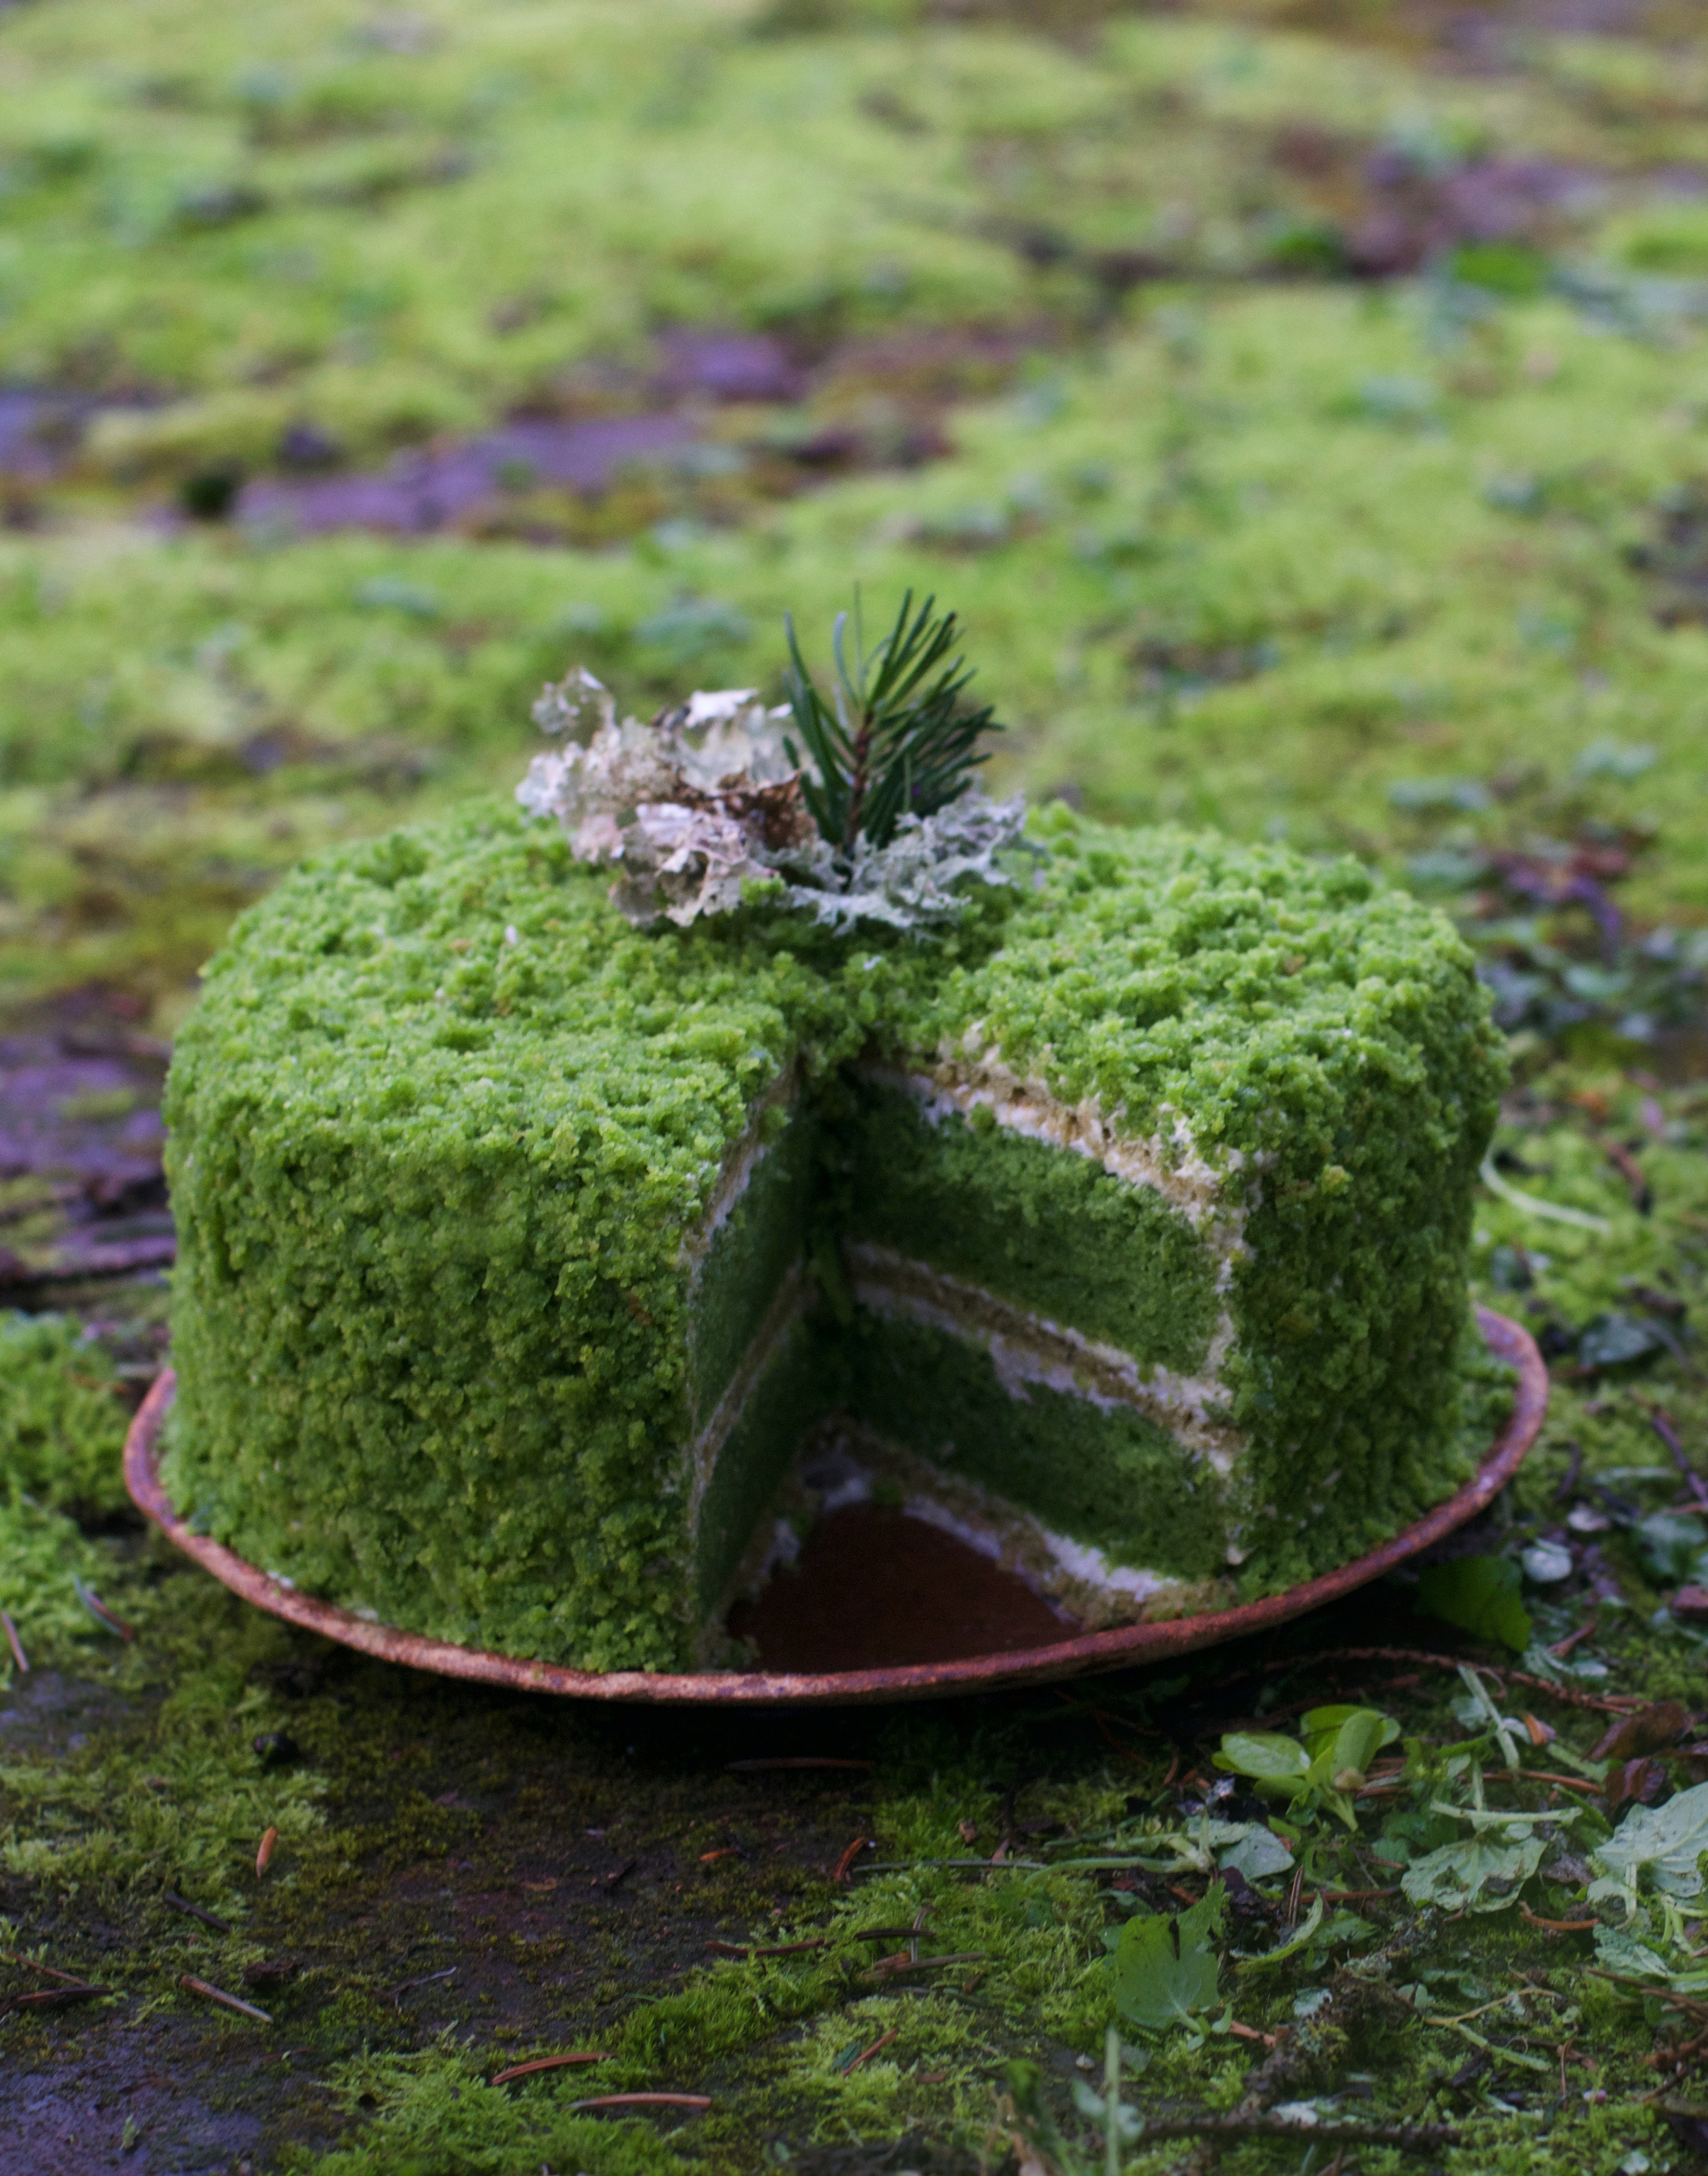 NETTLE CAKE: AN ODE TO MOSS GAZING